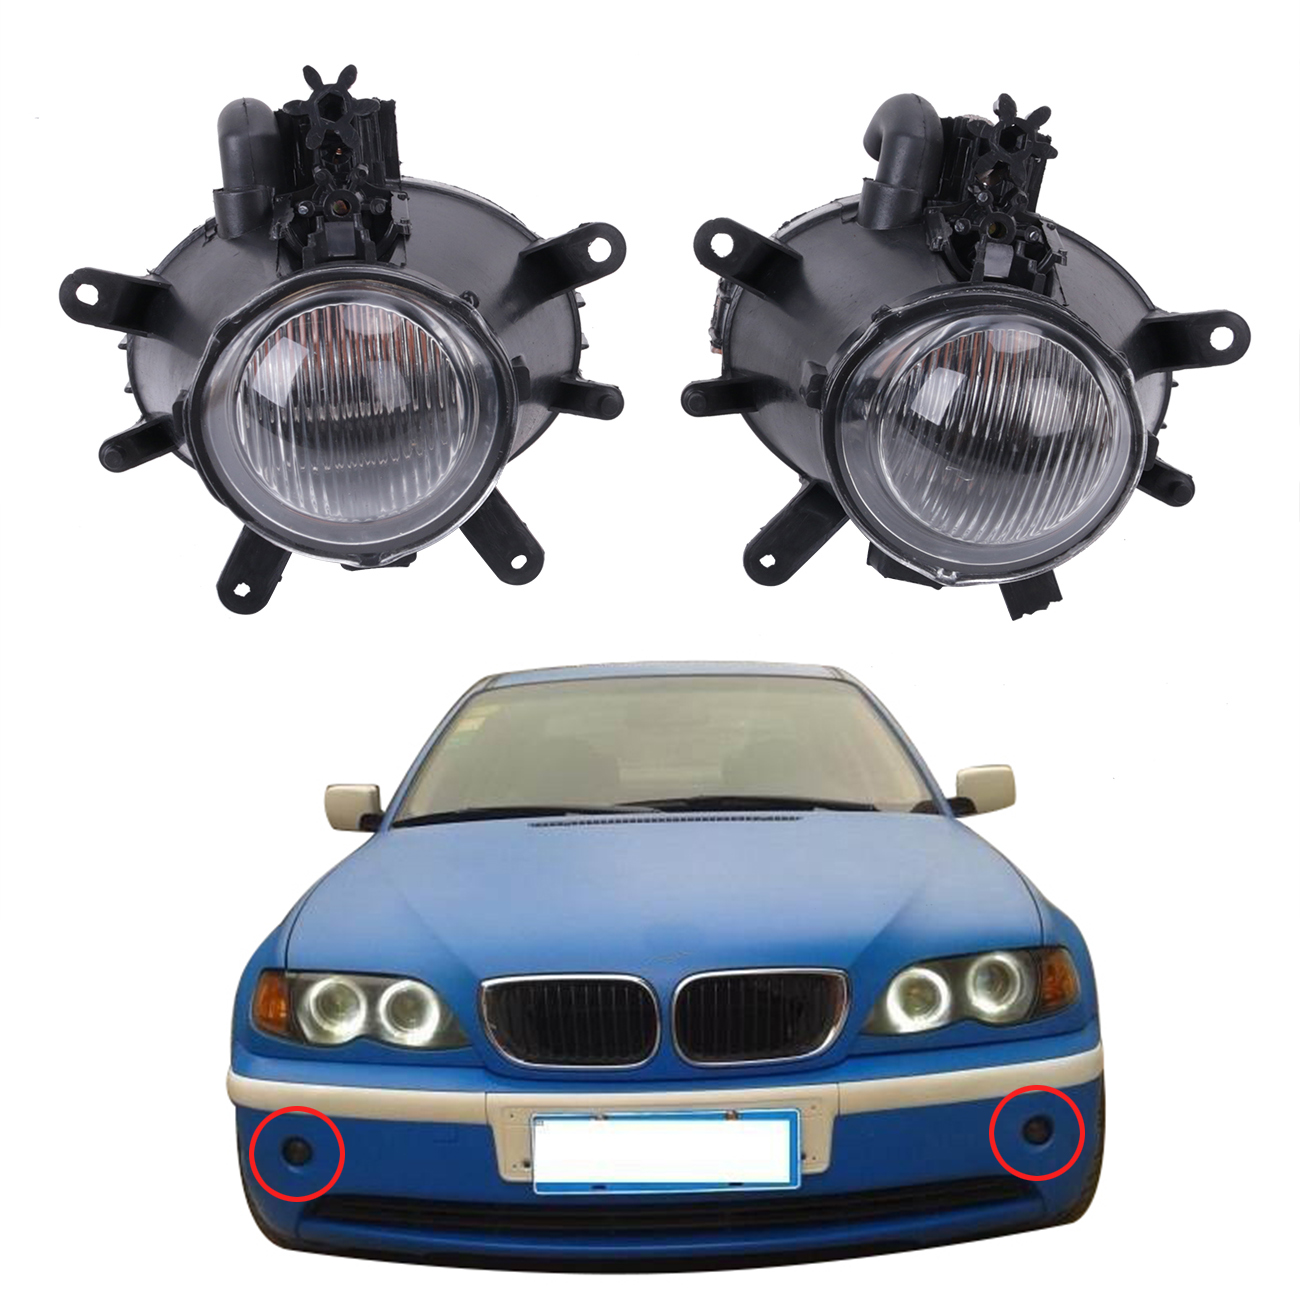 2x Front Bumper Fog Lights Lamps Clear Glass Len 63176911007 For BMW 3-Series E46 4-Door 330i 325i 330Xi 325 Xi 2001-2005 #W083 for bmw 3 series e36 318 328 323 325 front coilover strut camber plate top mount green drift front domlager top upper mount